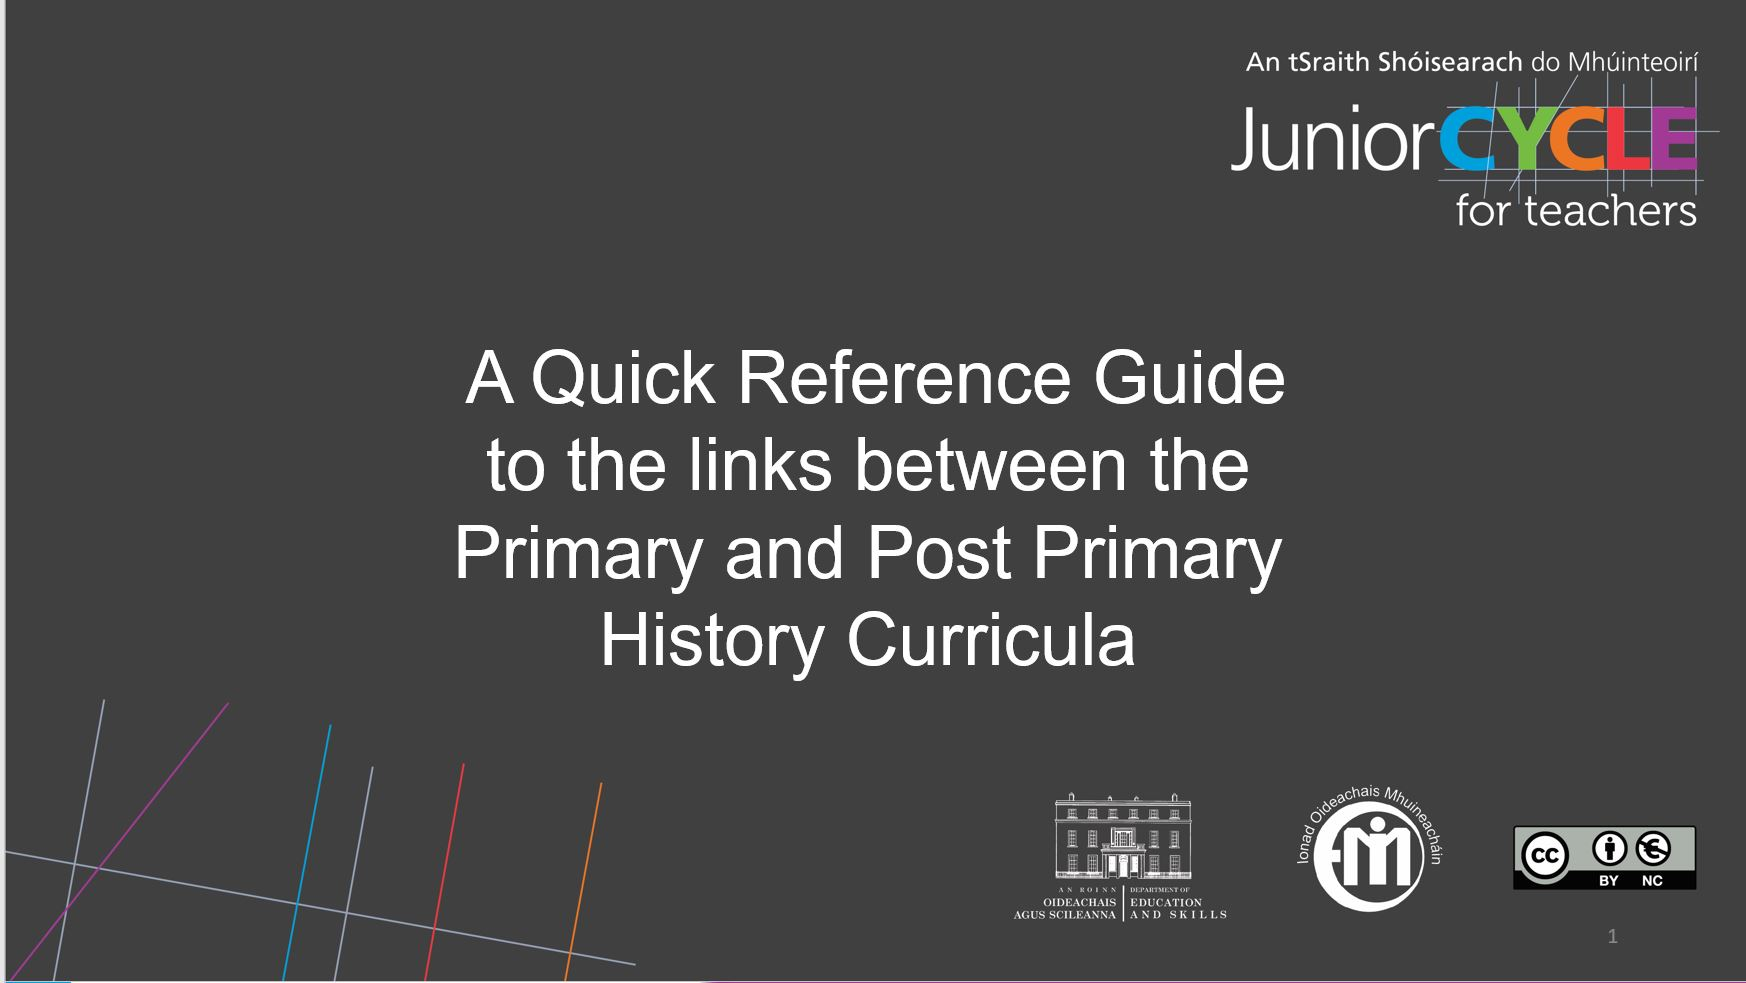 A Quick Reference Guide to the  Links Between the Primary and Post Primary History Curricula